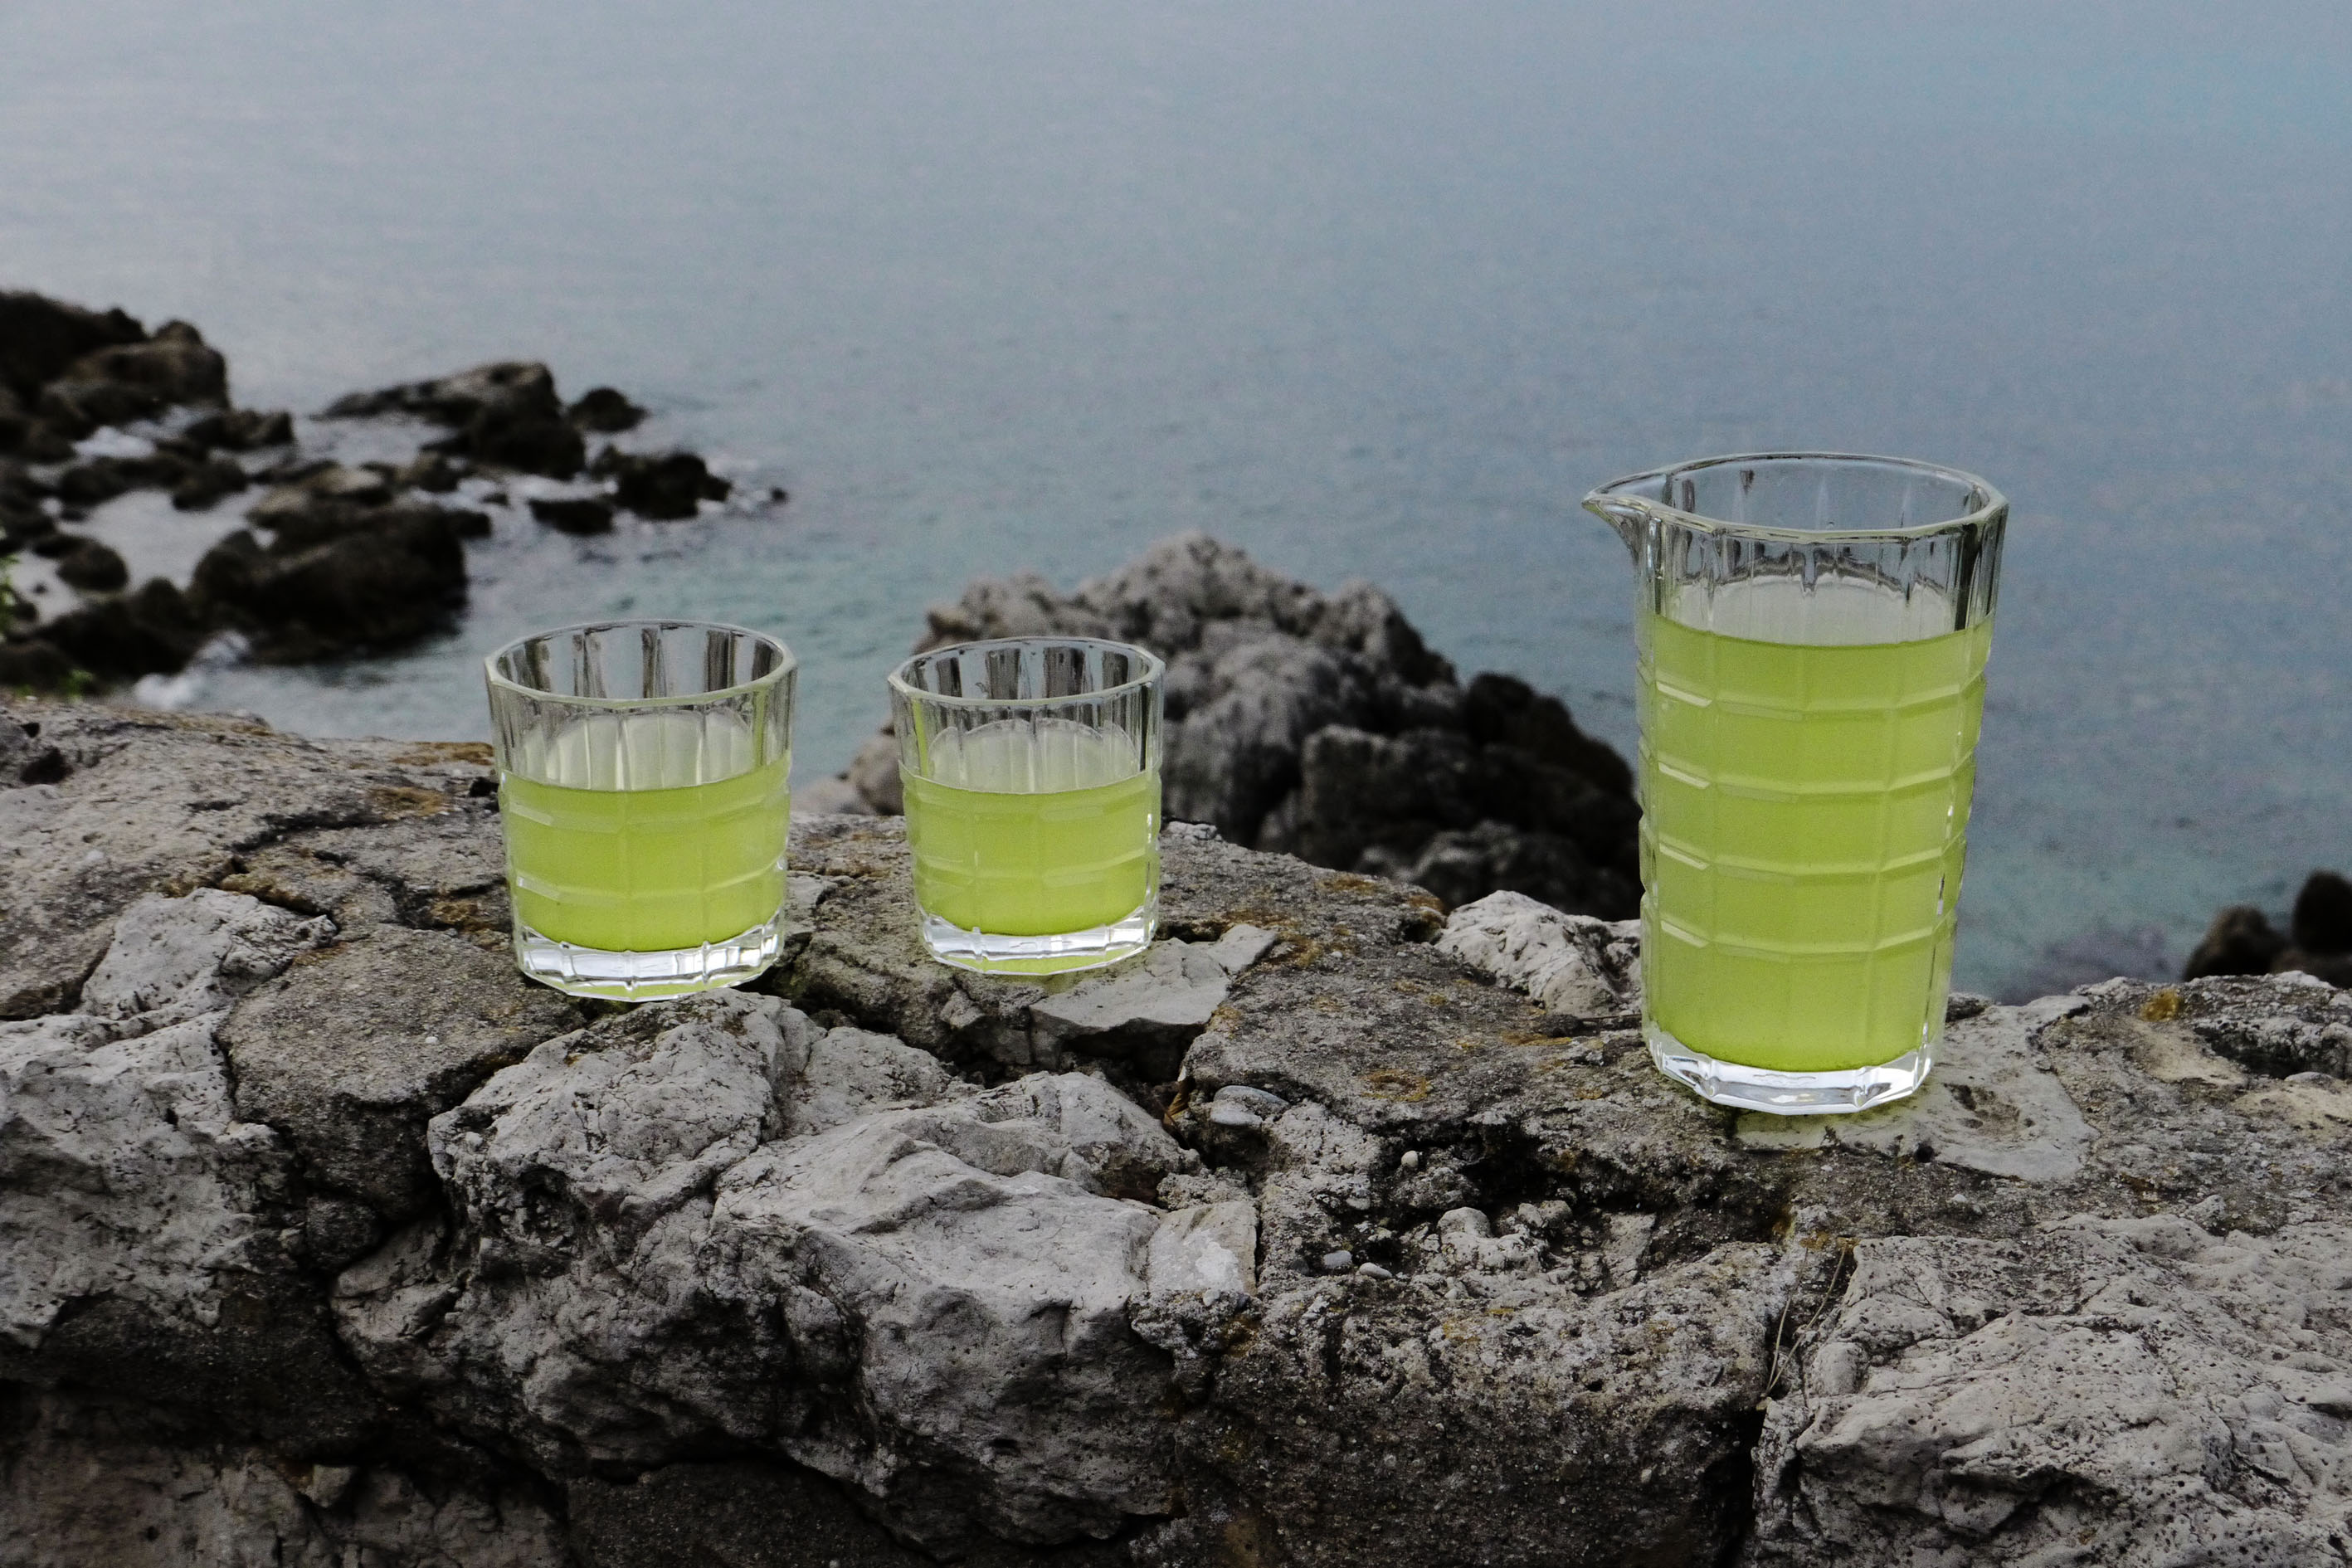 Green tea at the blue sea. Ready to enjoy both?